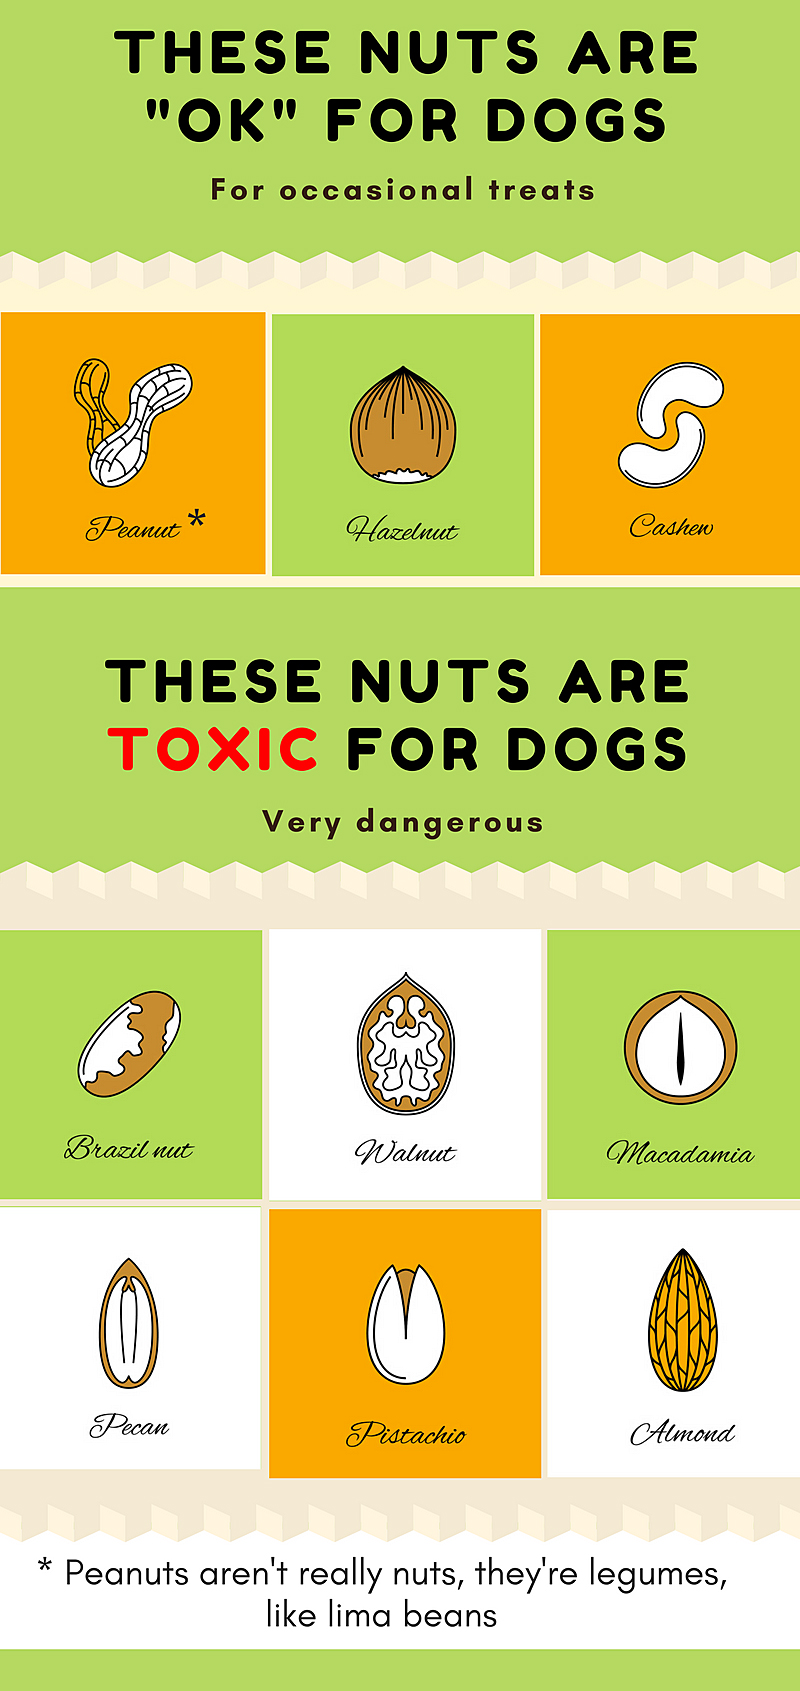 Nuts that are safe for dogs and nuts that are toxic for dogs